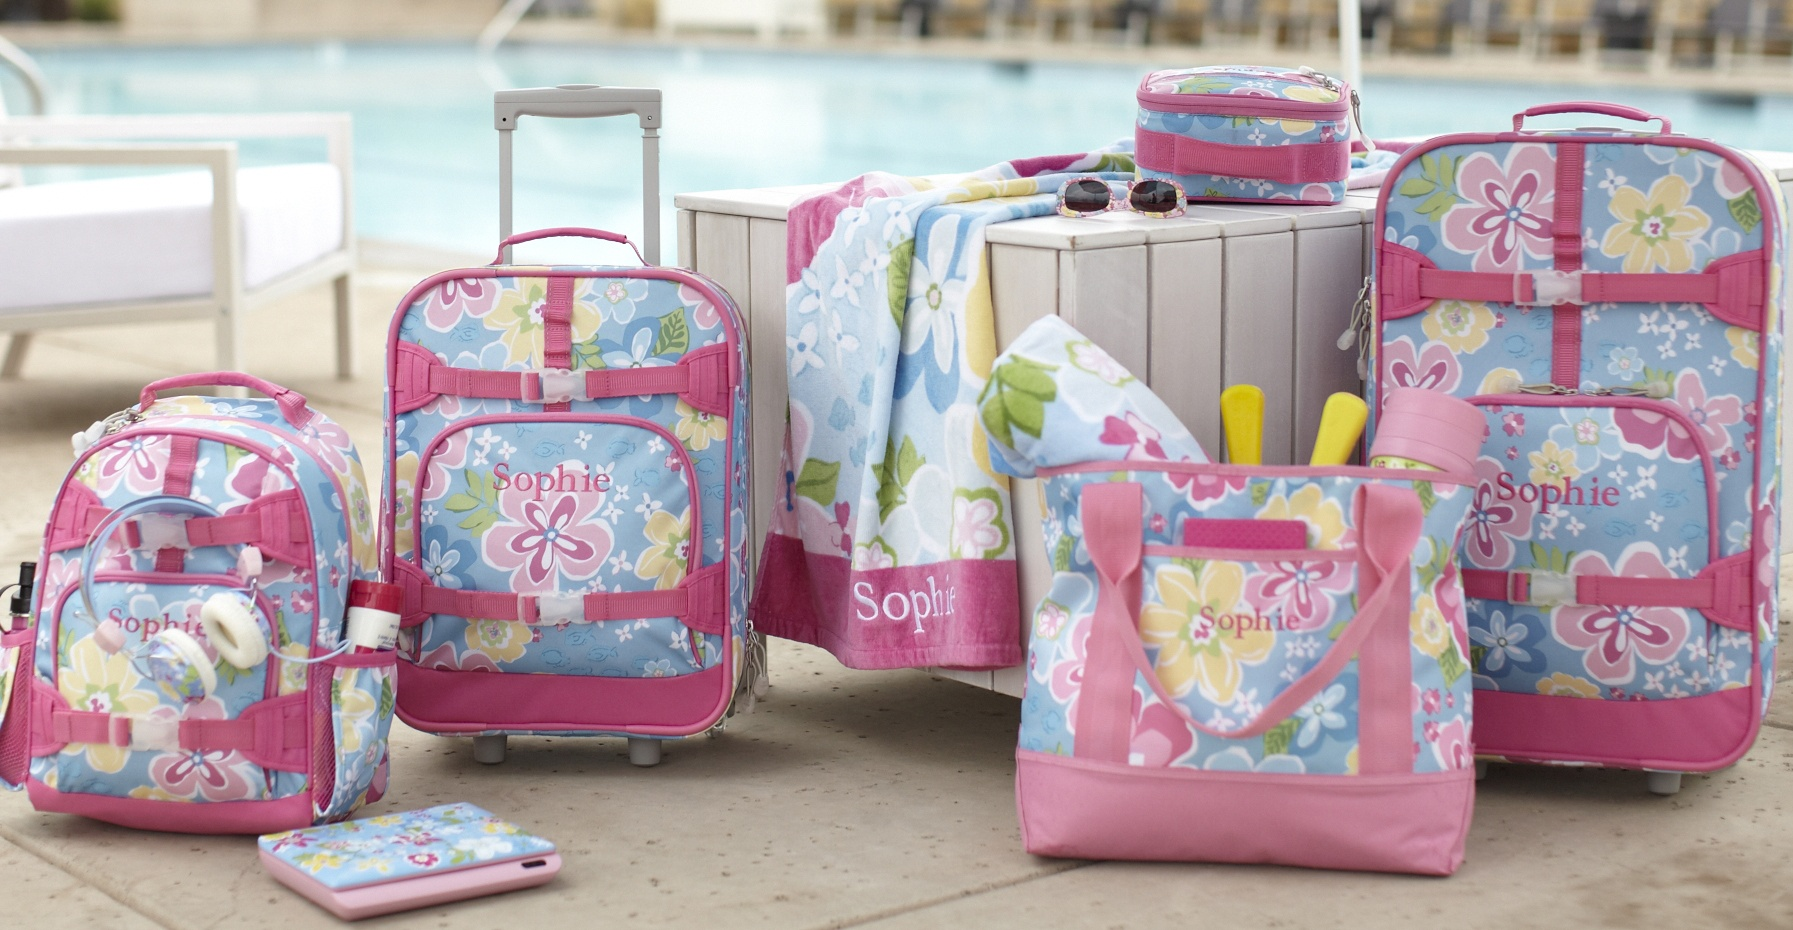 Pottery Barn Kids and PBteen Launch Exclusive School Rewards